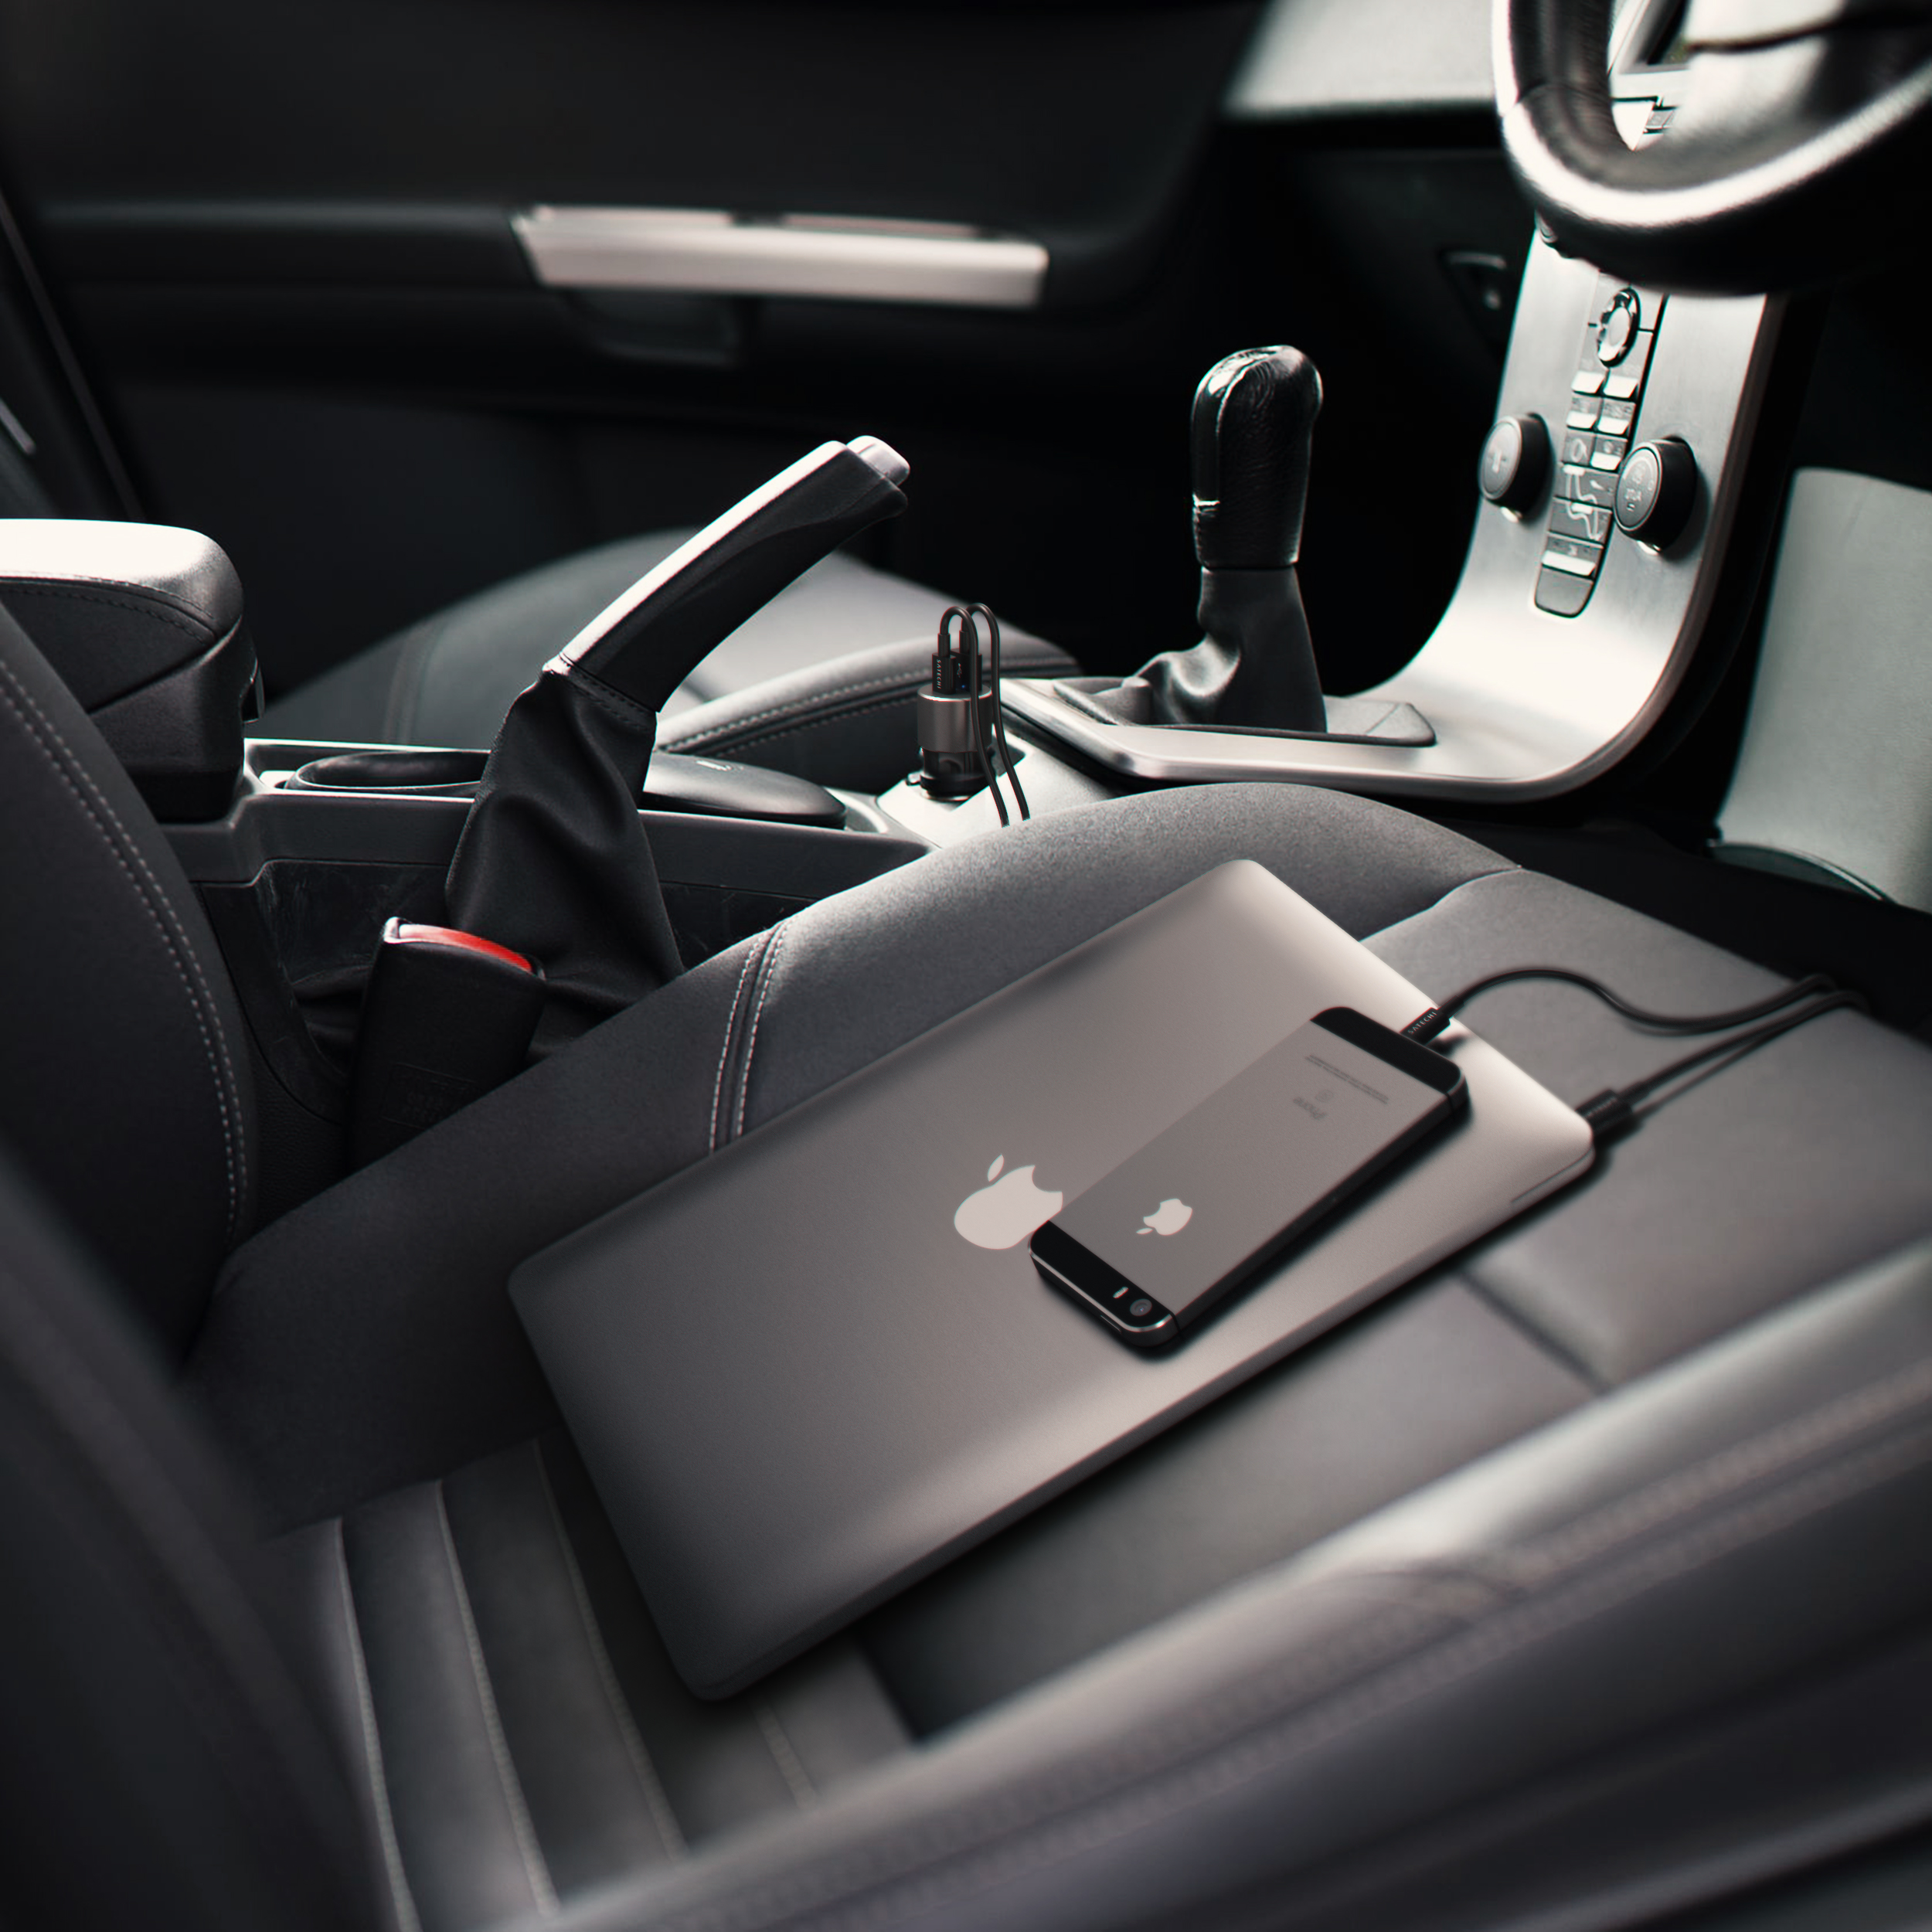 Satechi 72W USB-C car charger used in car - product image courtesy of MacGear Australia